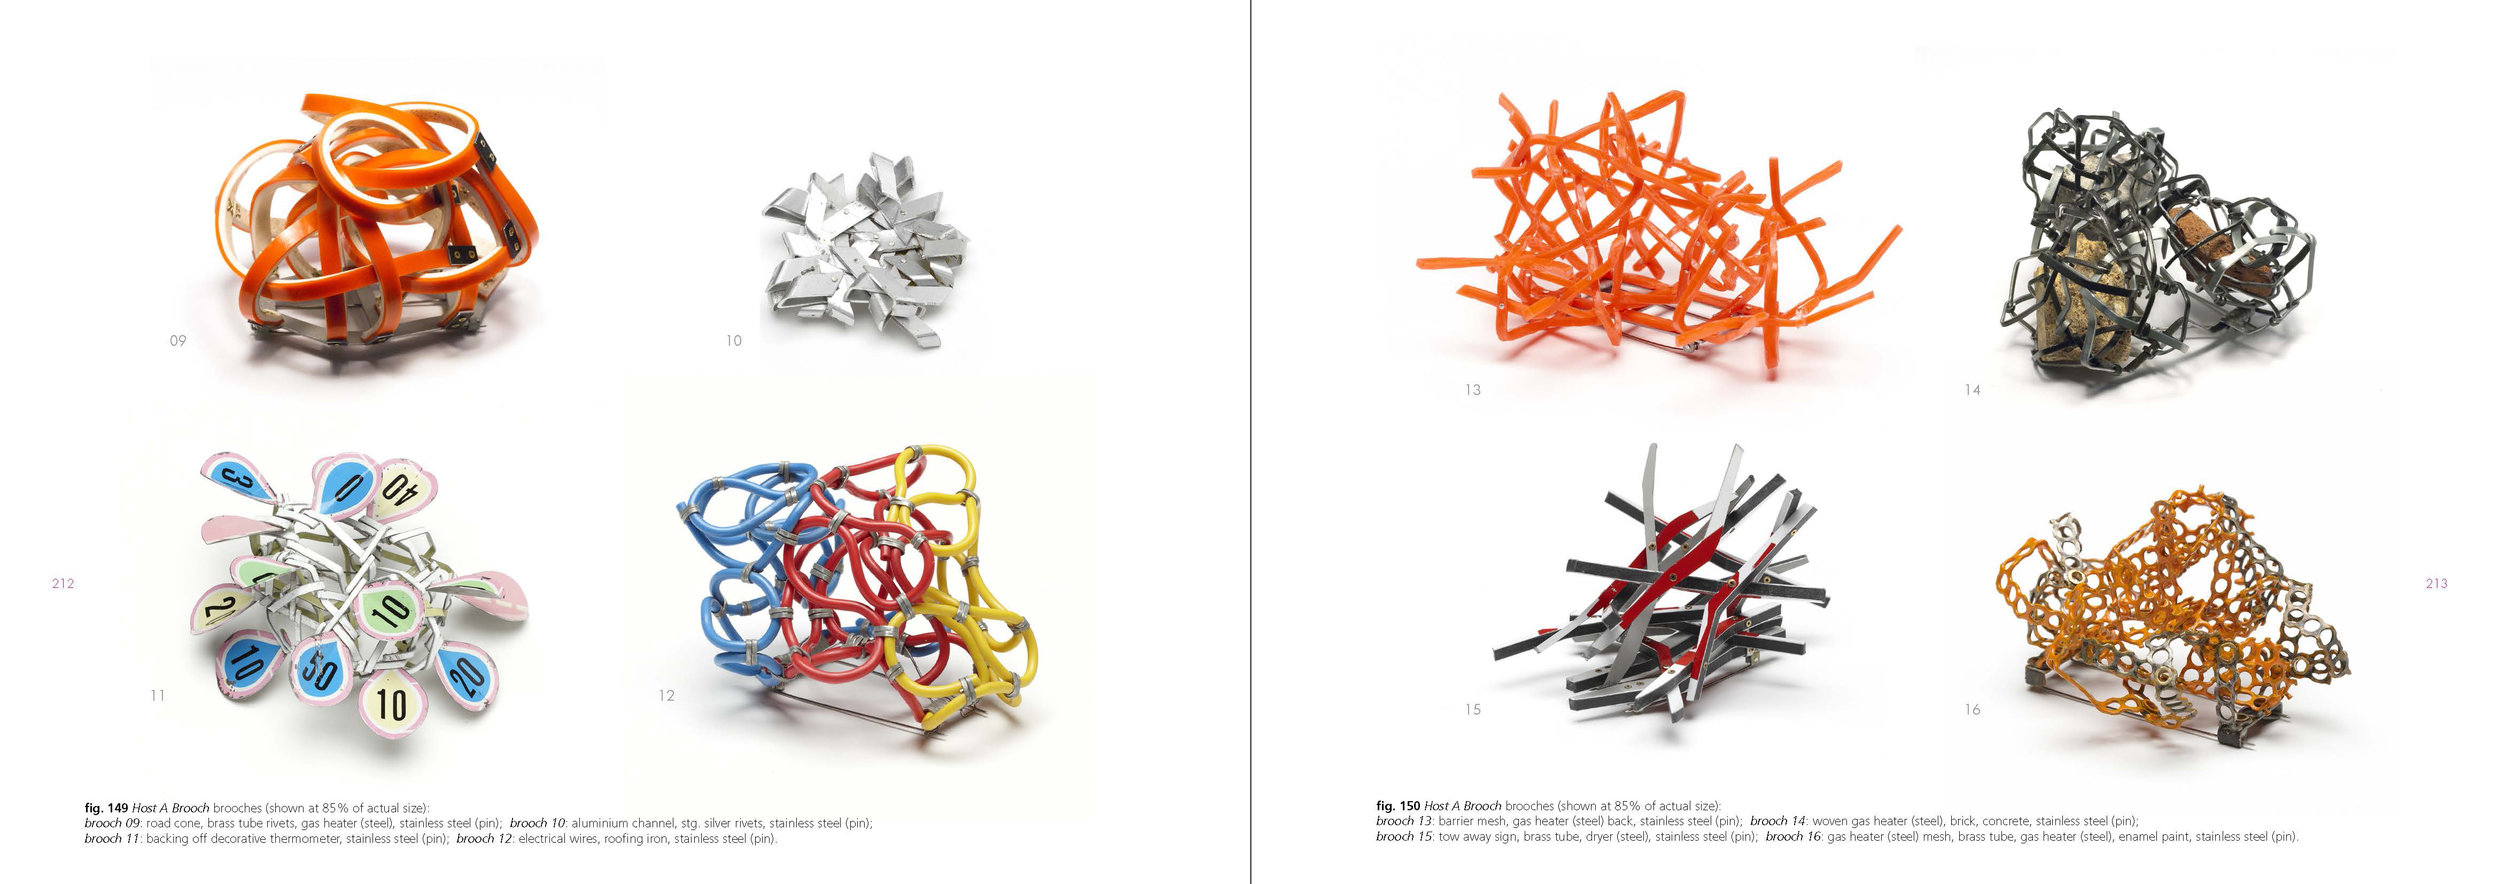 Jacqui Chan_jewellery in the urban milieu_part 3_project milieu 04 + conclusion_Page_022.jpg